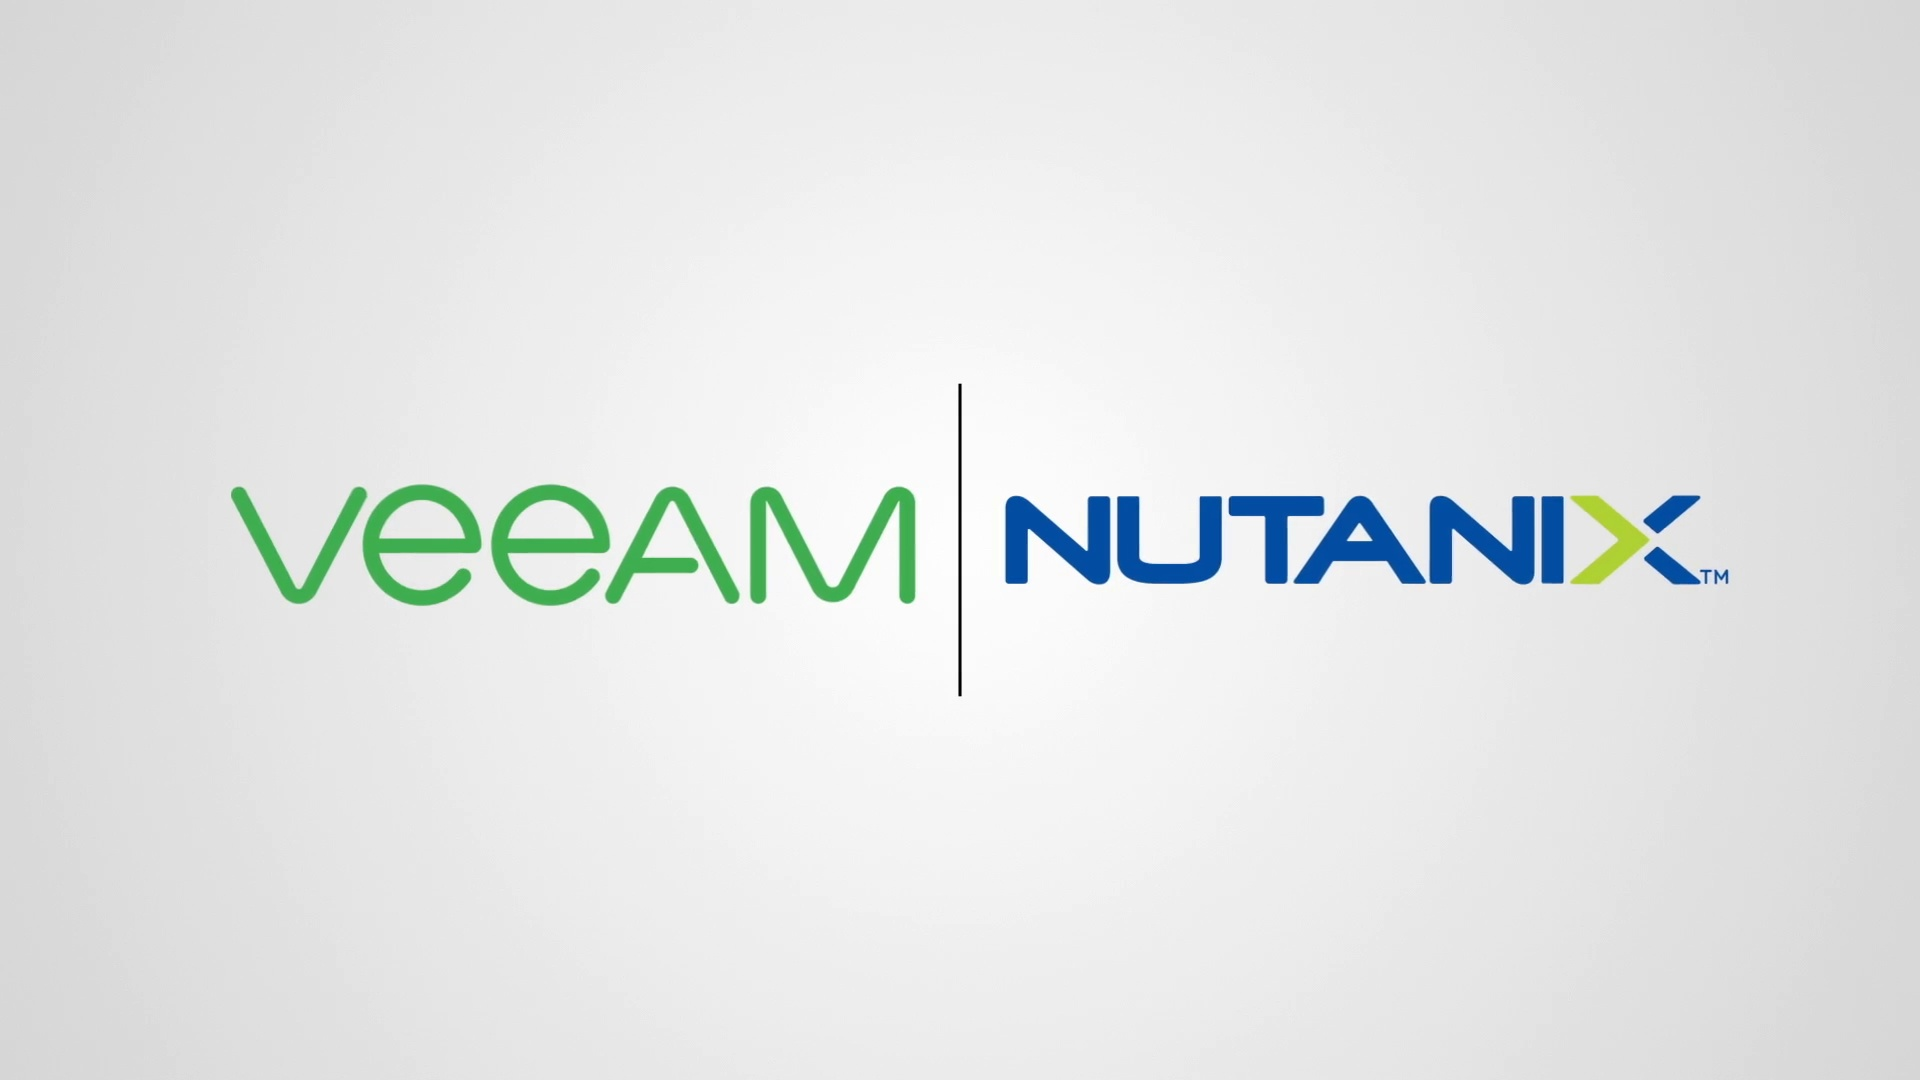 Nutanix and Veeam Alliance Leads discuss exciting new joint solutions